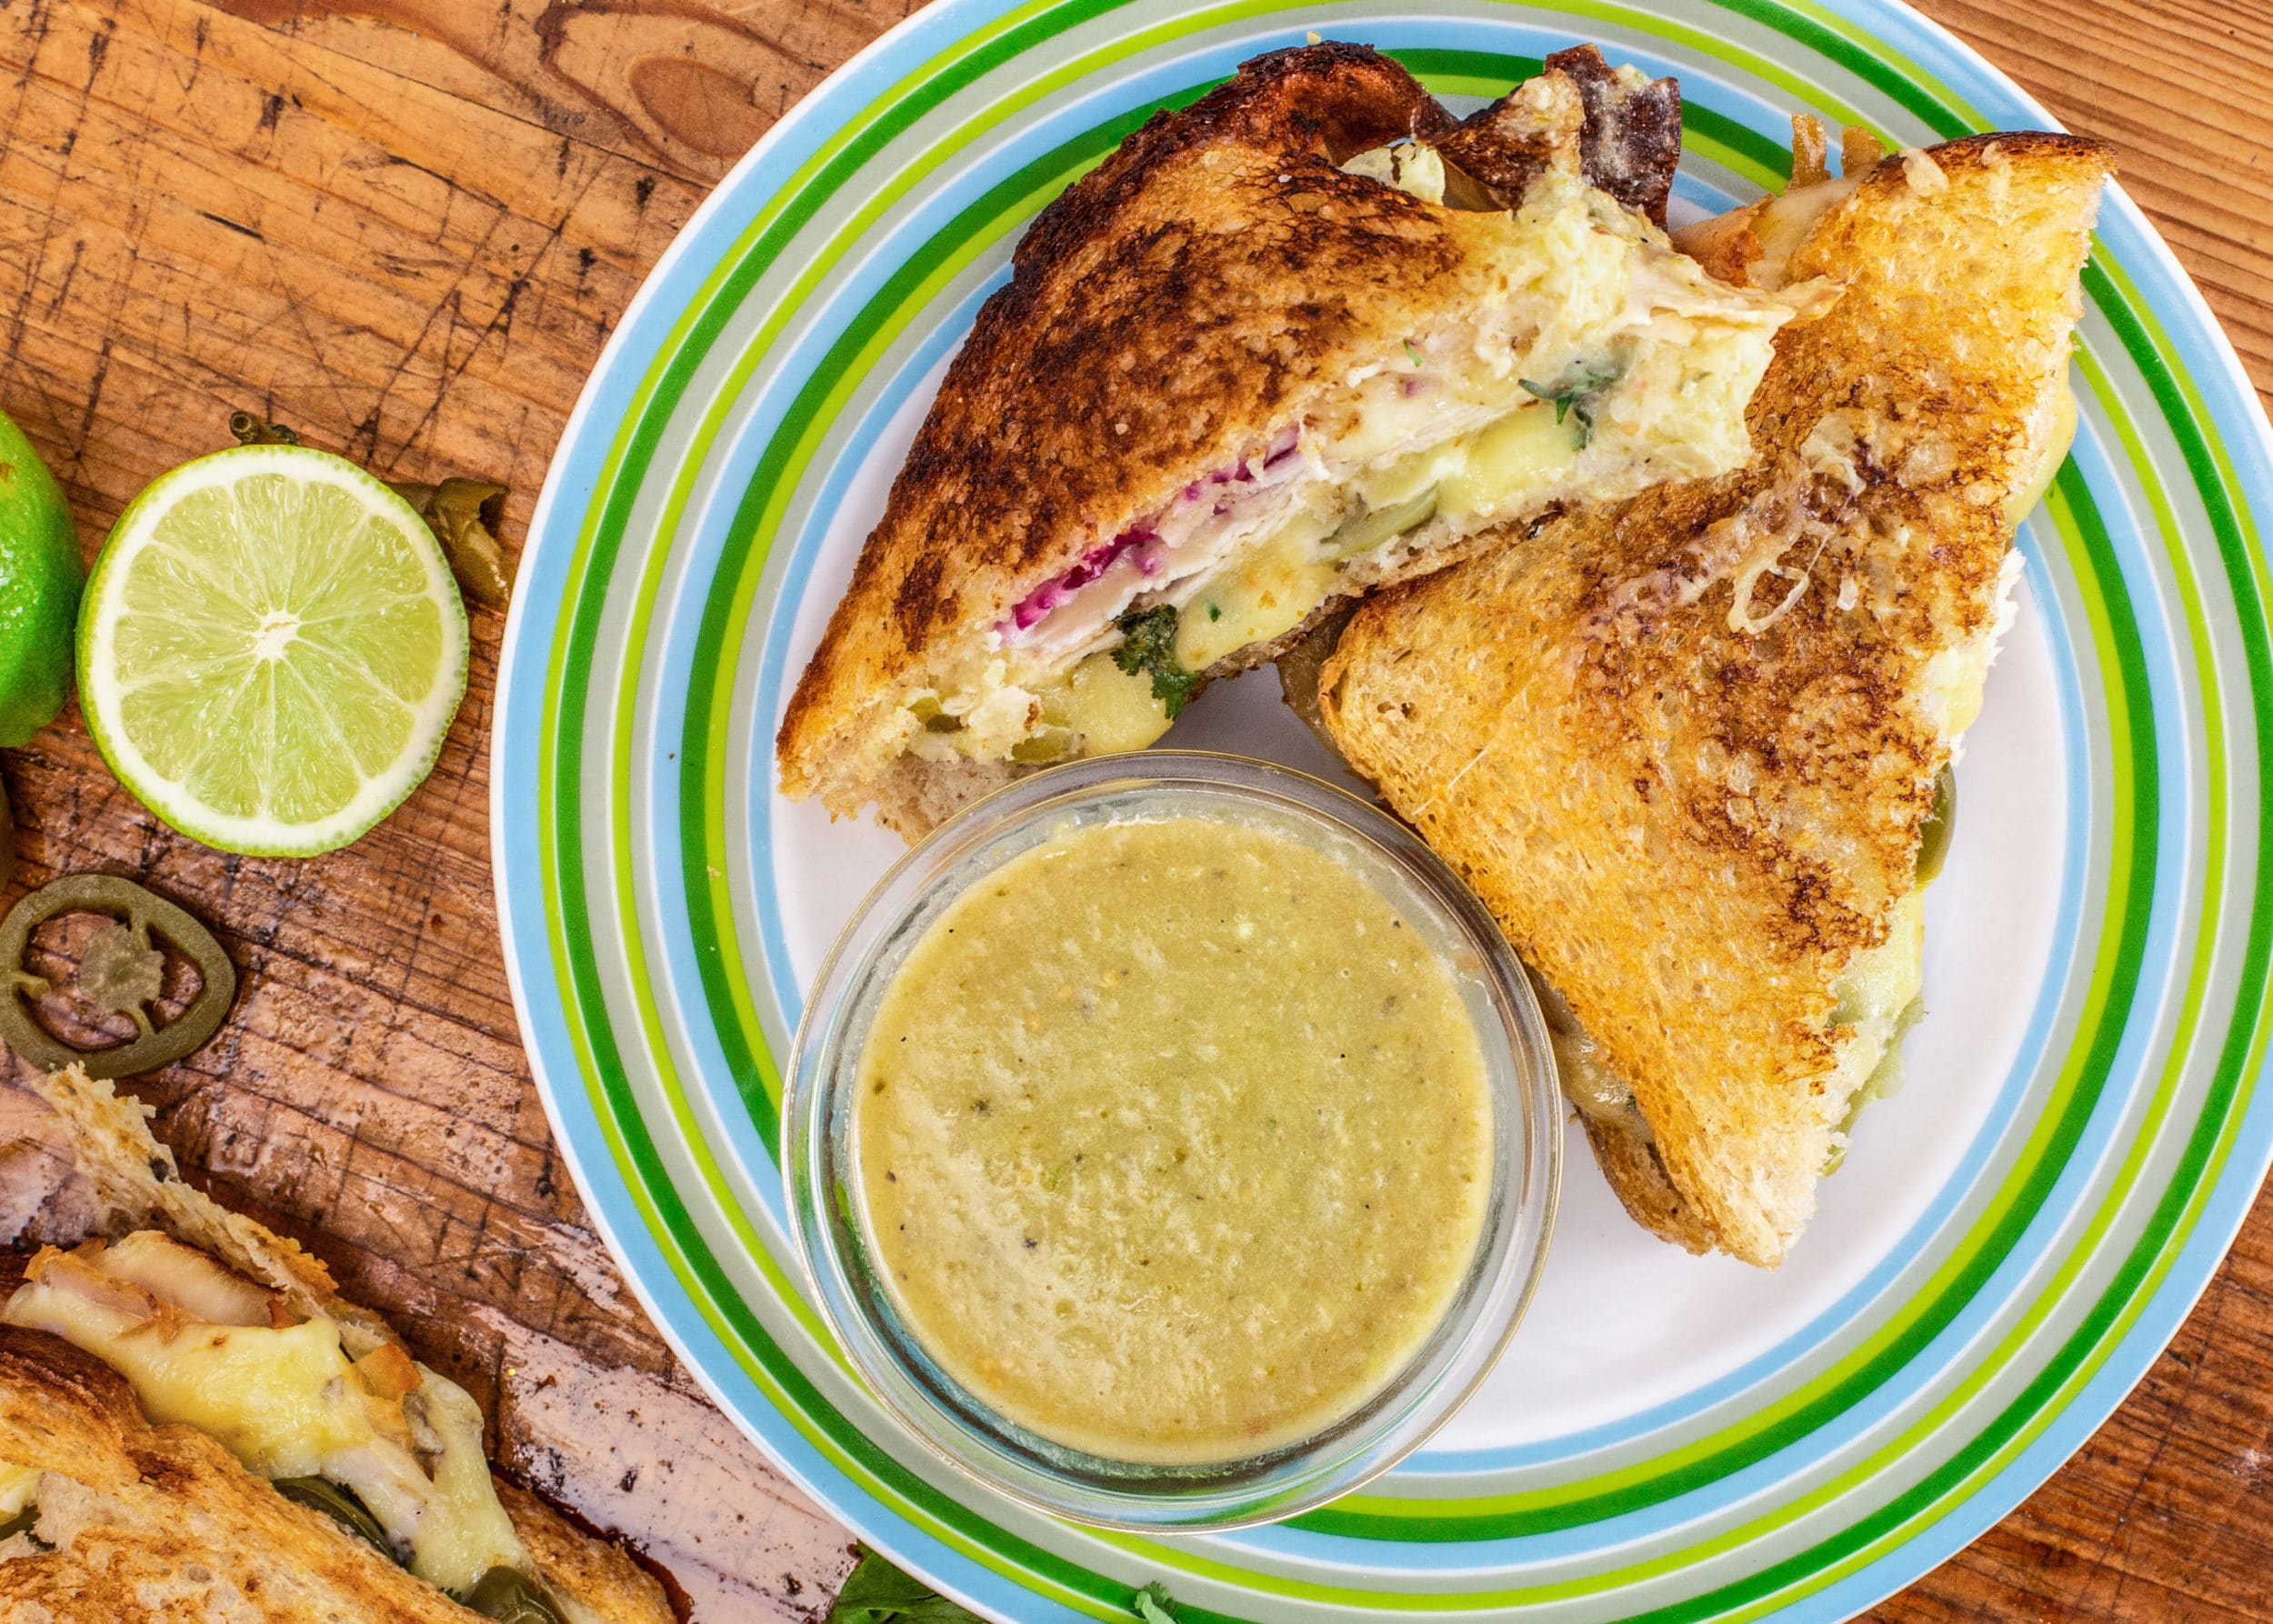 Rachael's Turkey Grilled Cheese with Suiza Dipper